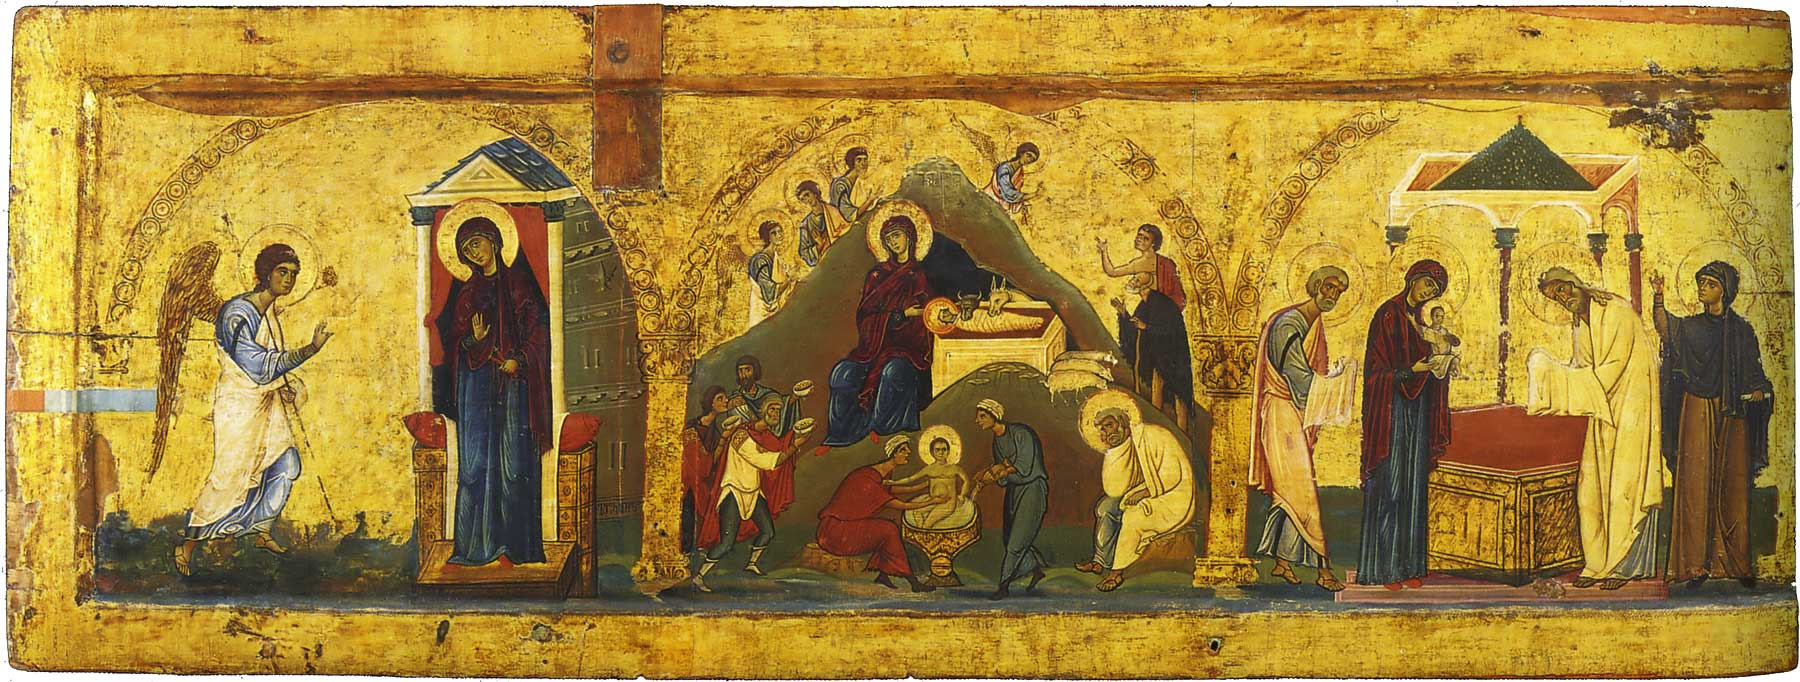 Annunciation, nativity, and temple blessing (peace)